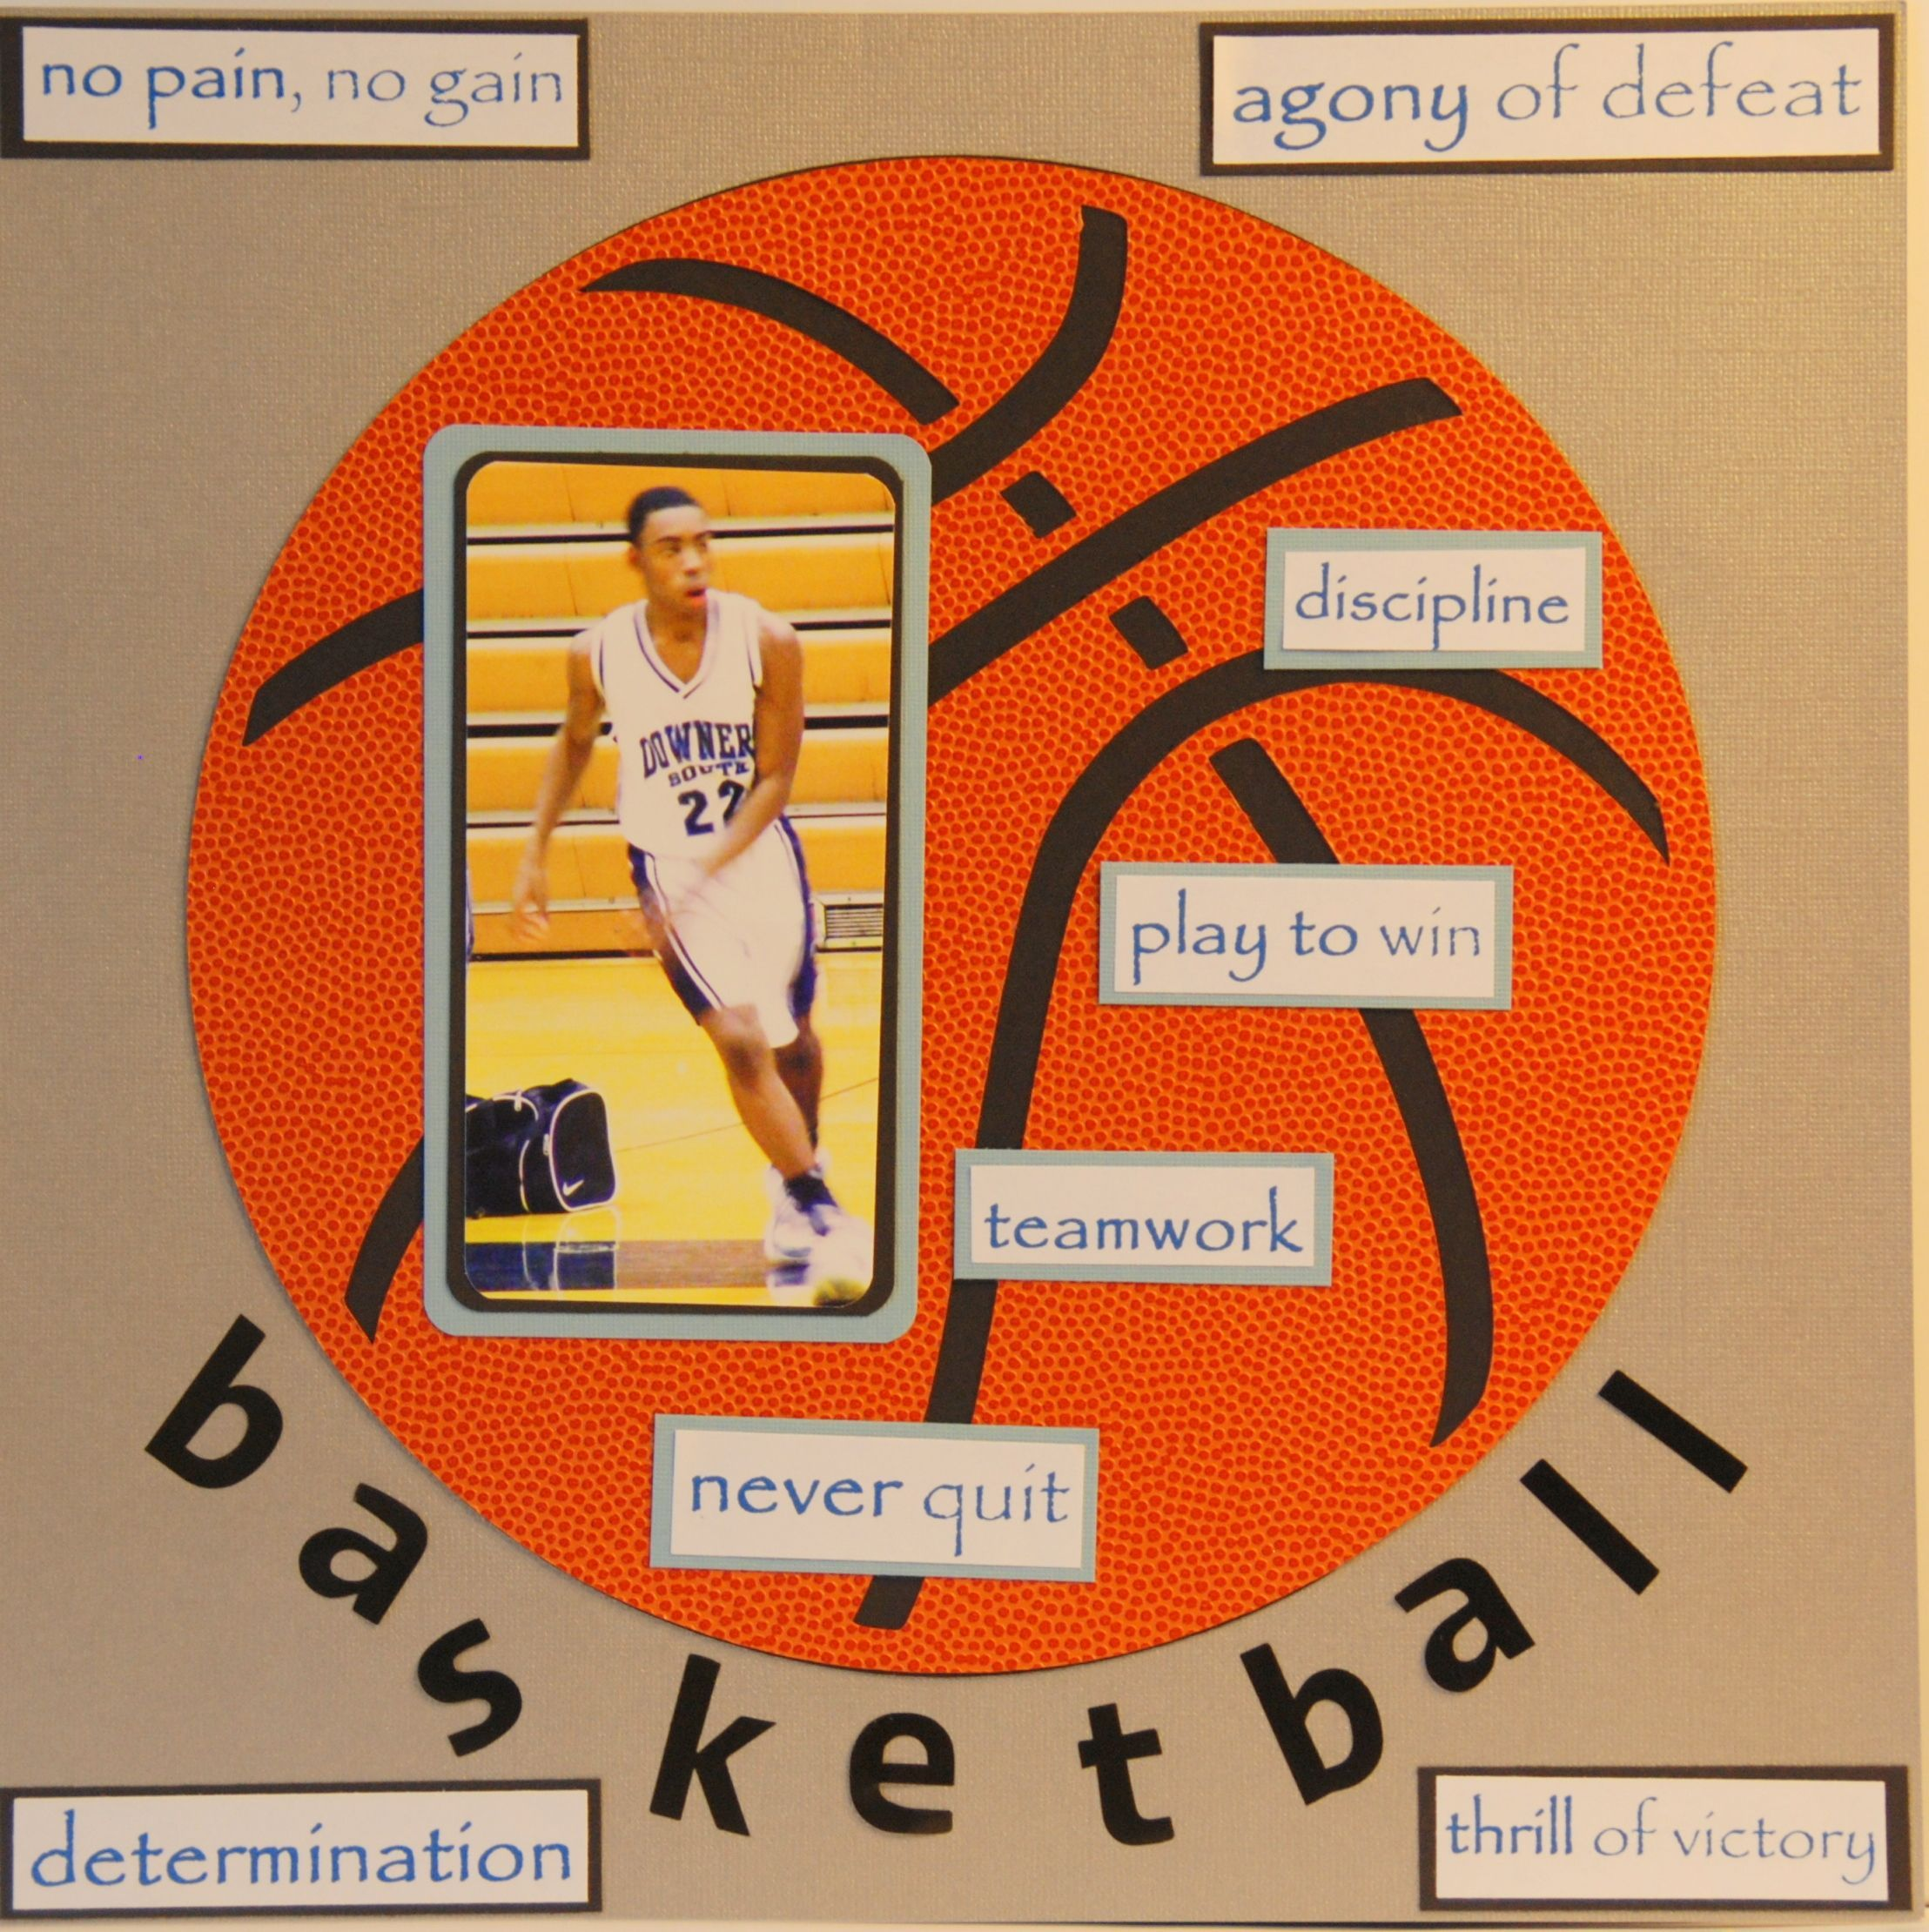 A game of basketball (1 of 2) Sports gifts Sportsgifts